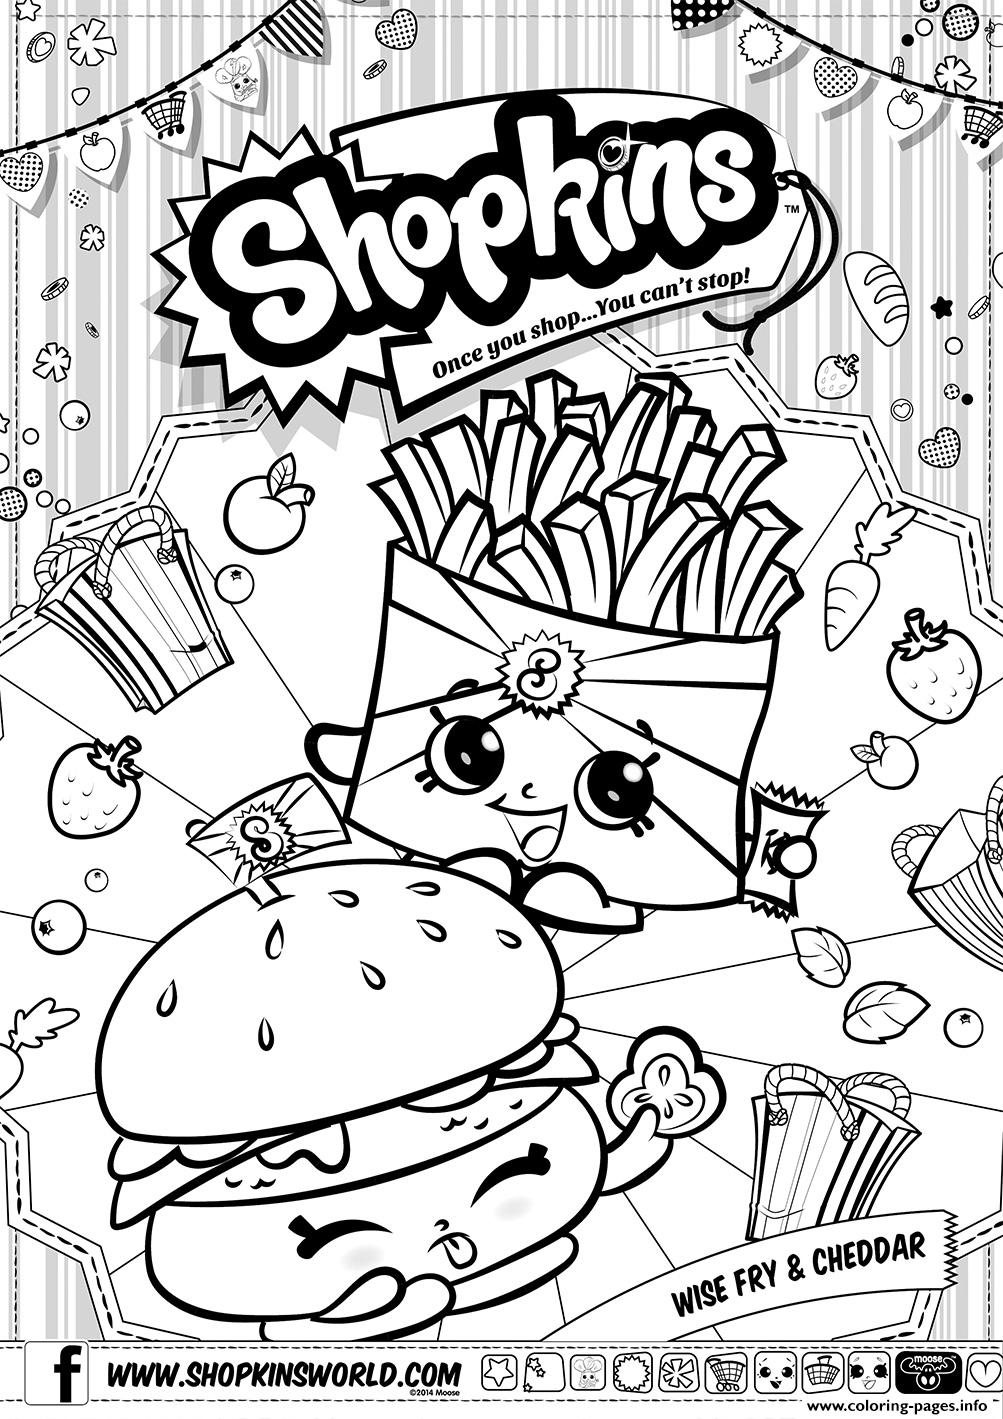 shopkins wise fry cheddar coloring pages printable